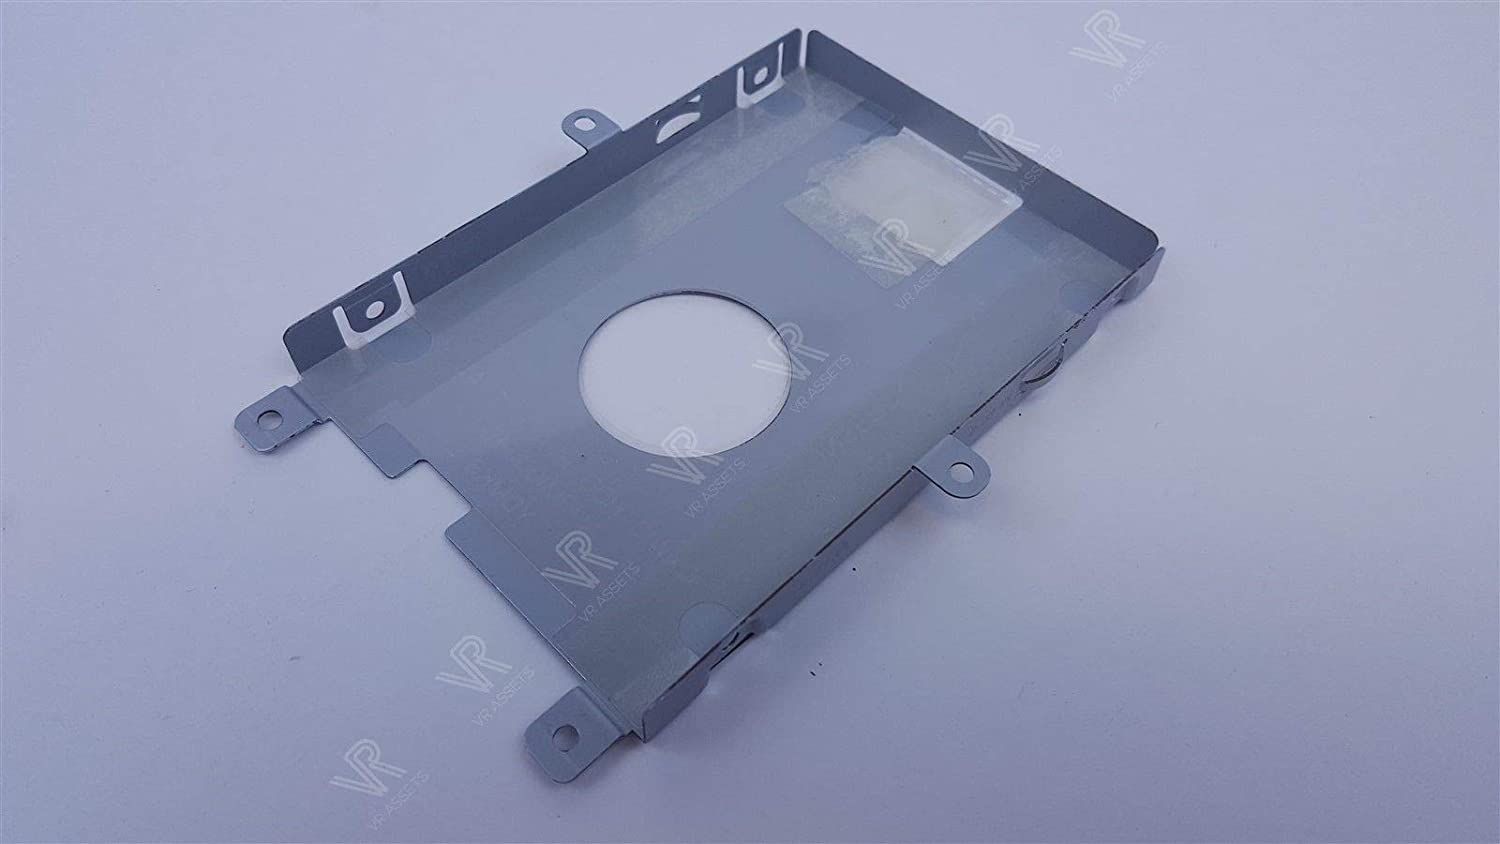 Dell Laptop DGJ8M Hard Drive Caddy Latitude E5530